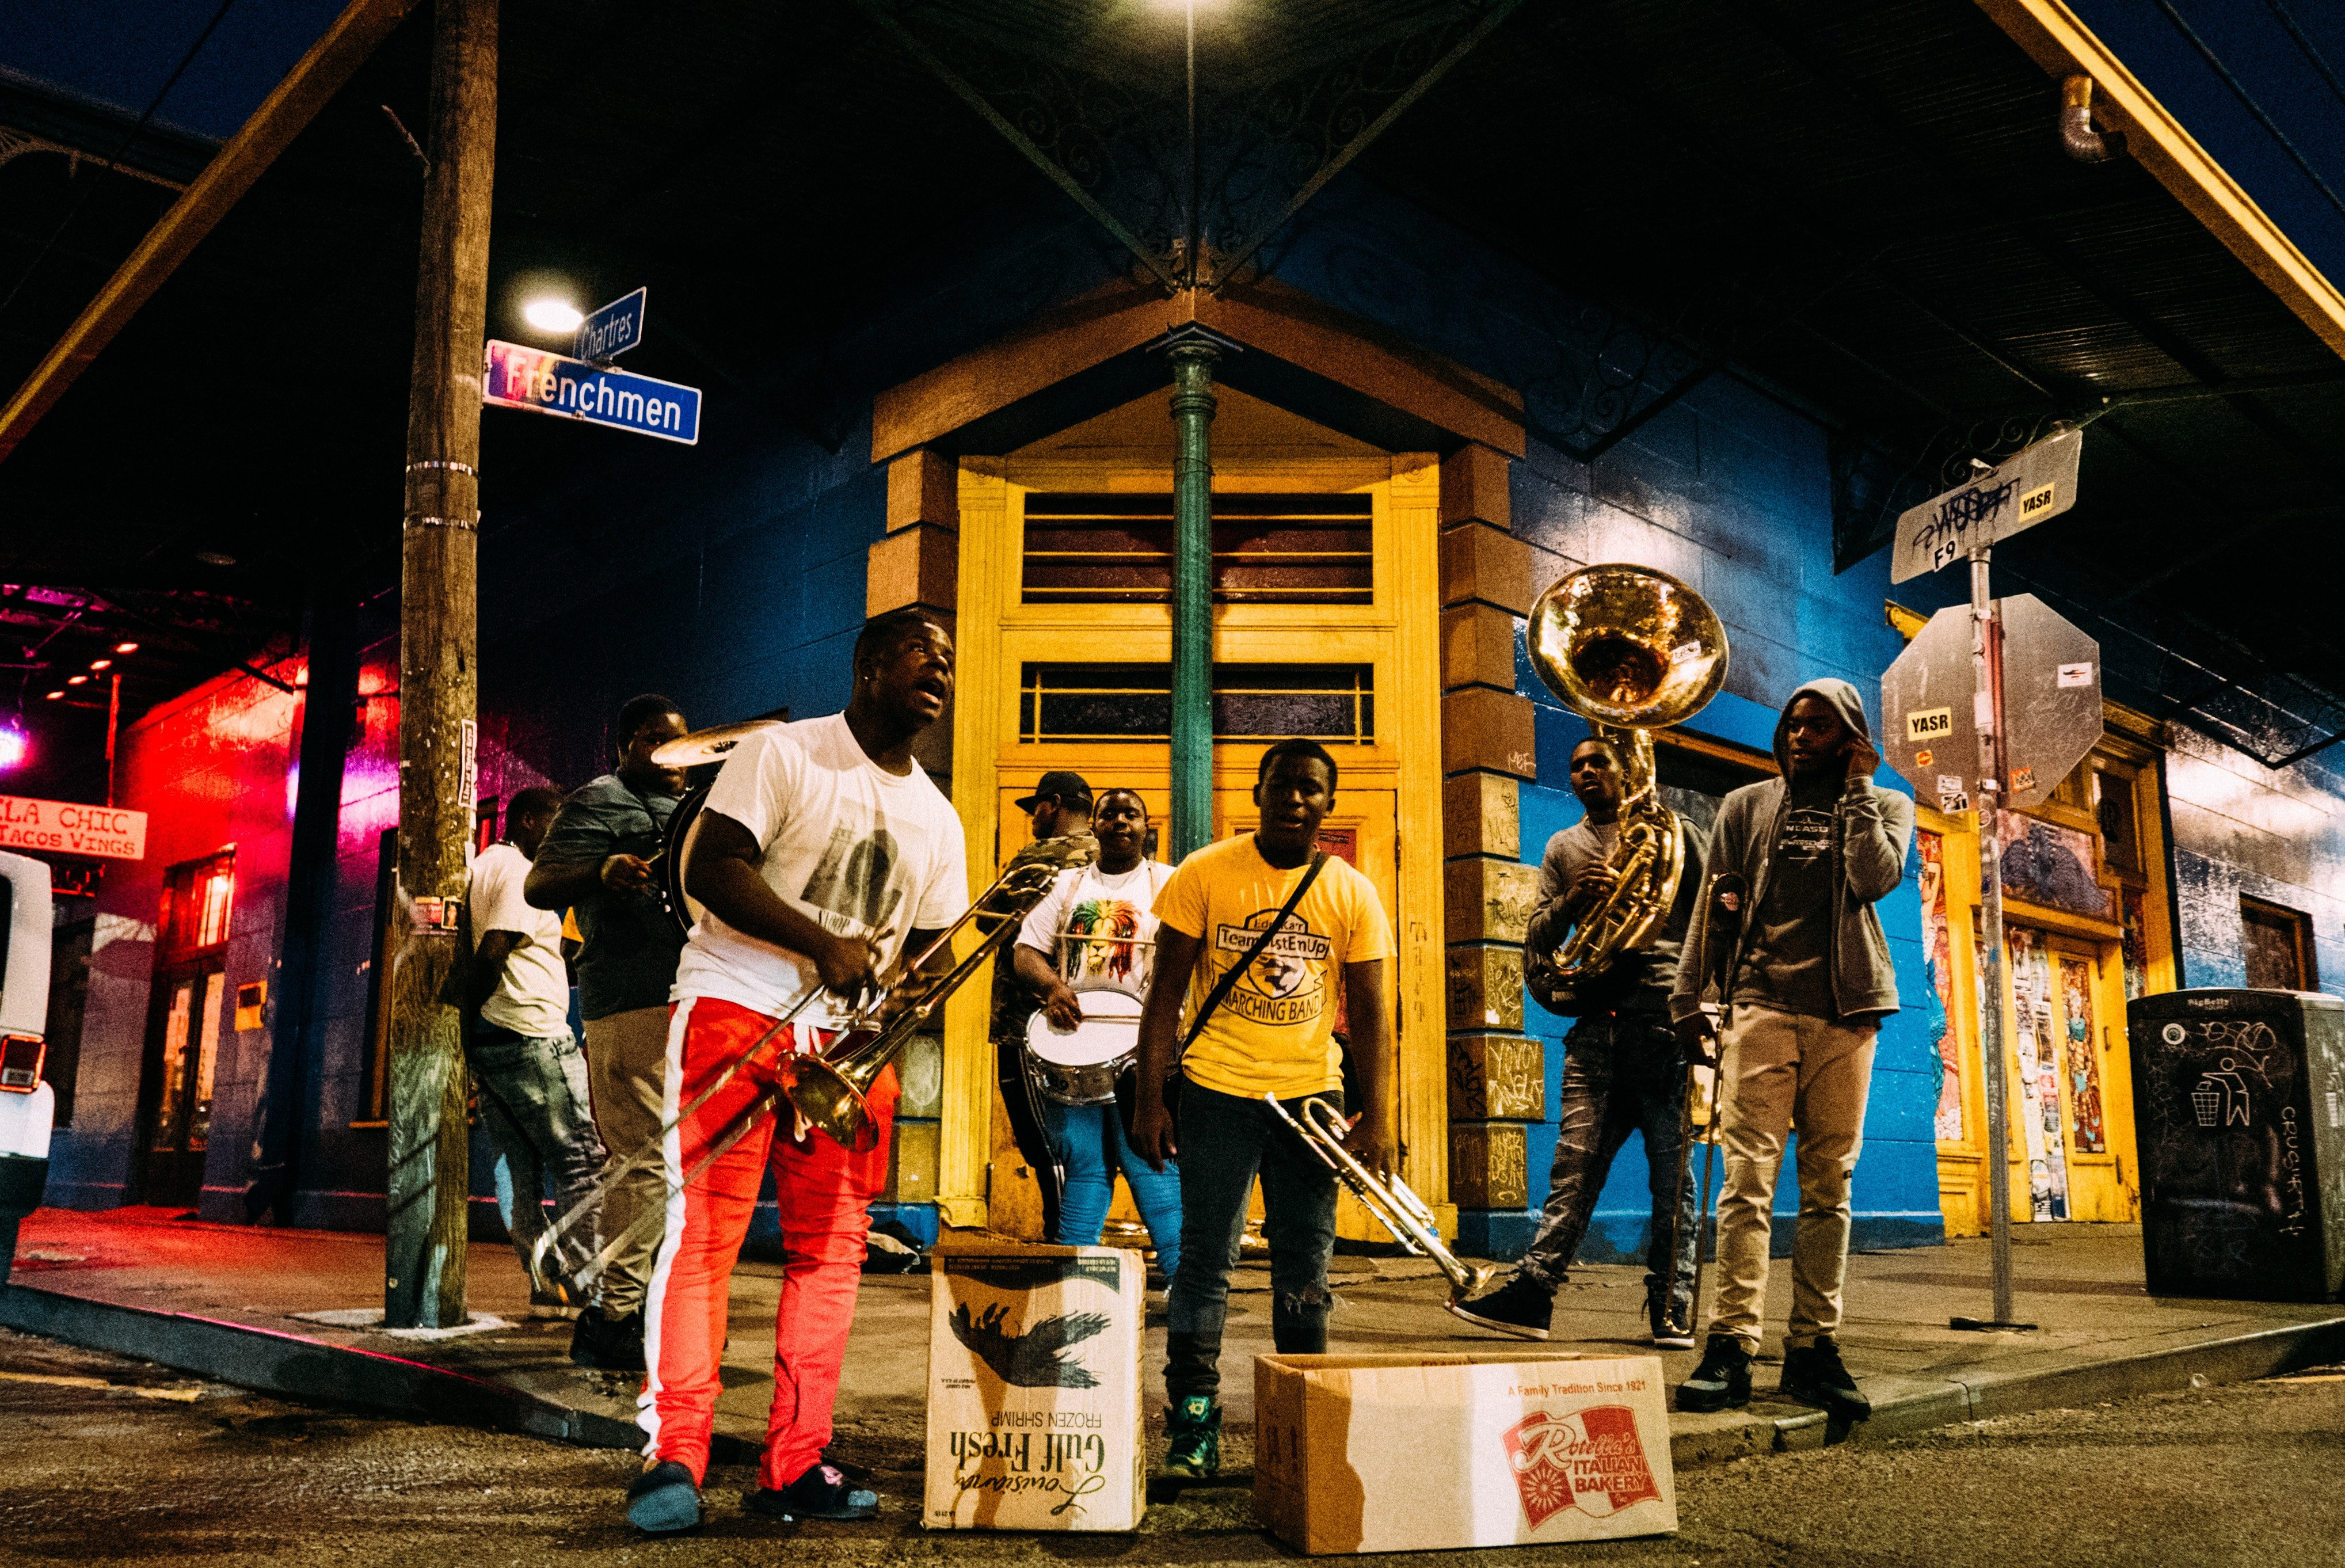 Jazz musicians on Frenchmen Street, New Orleans